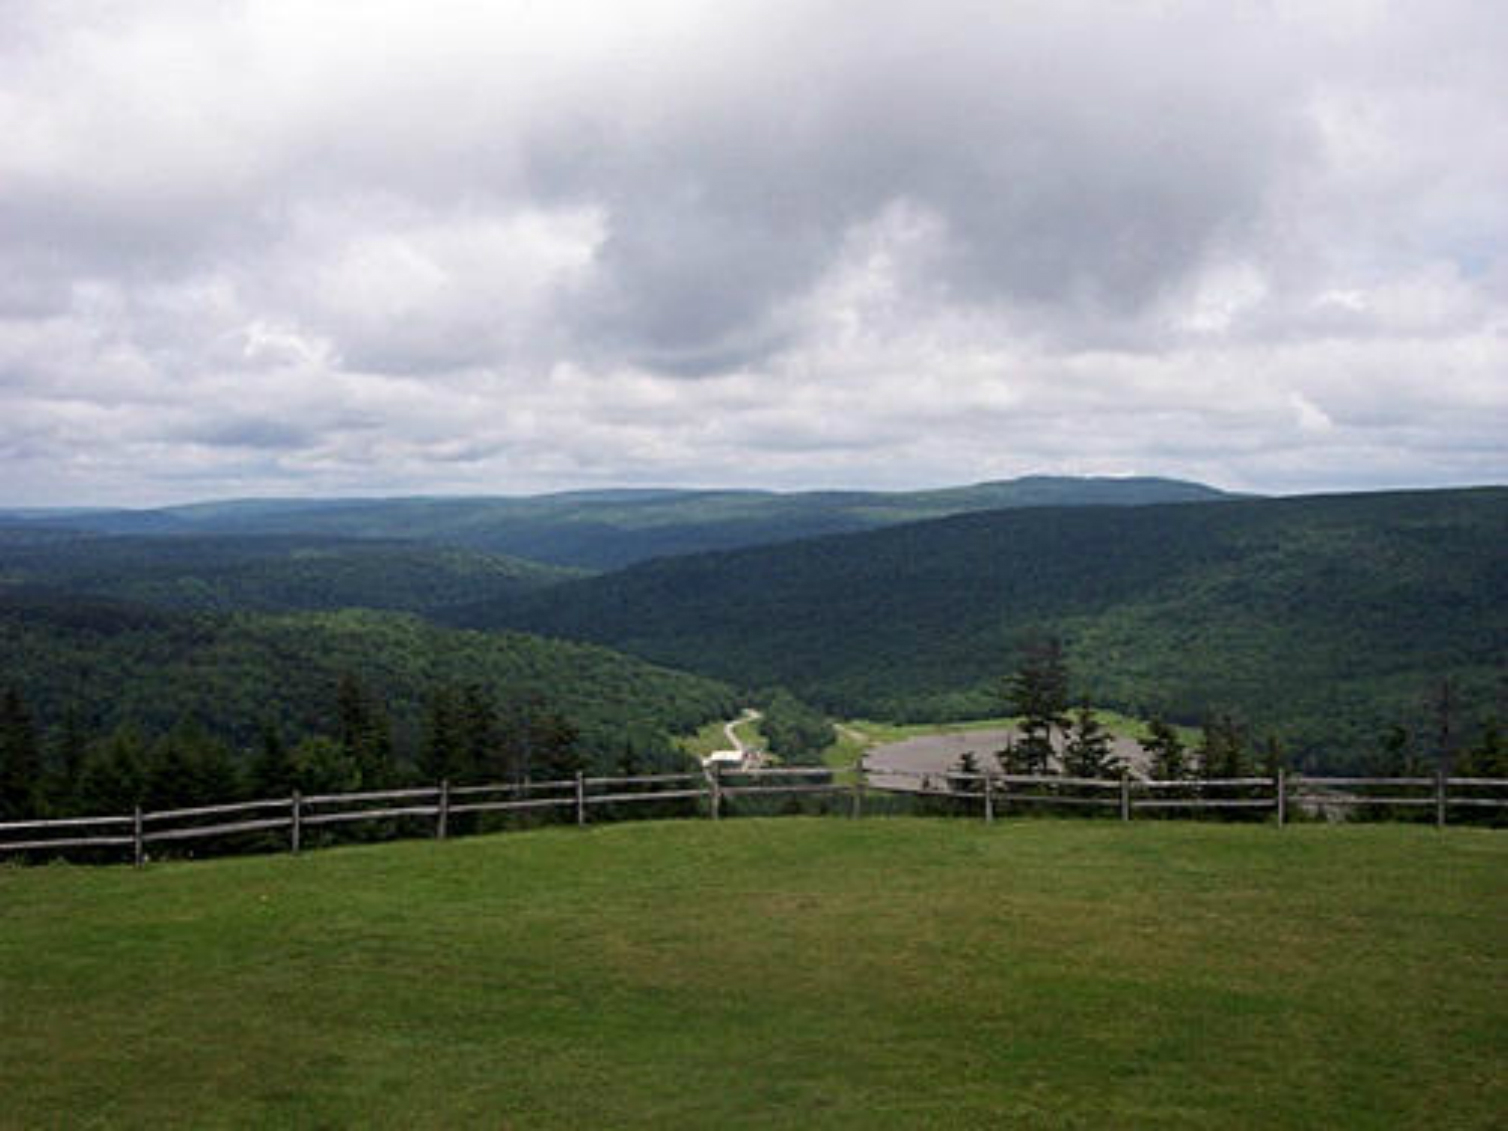 snowshoe wv condos for sale/market update